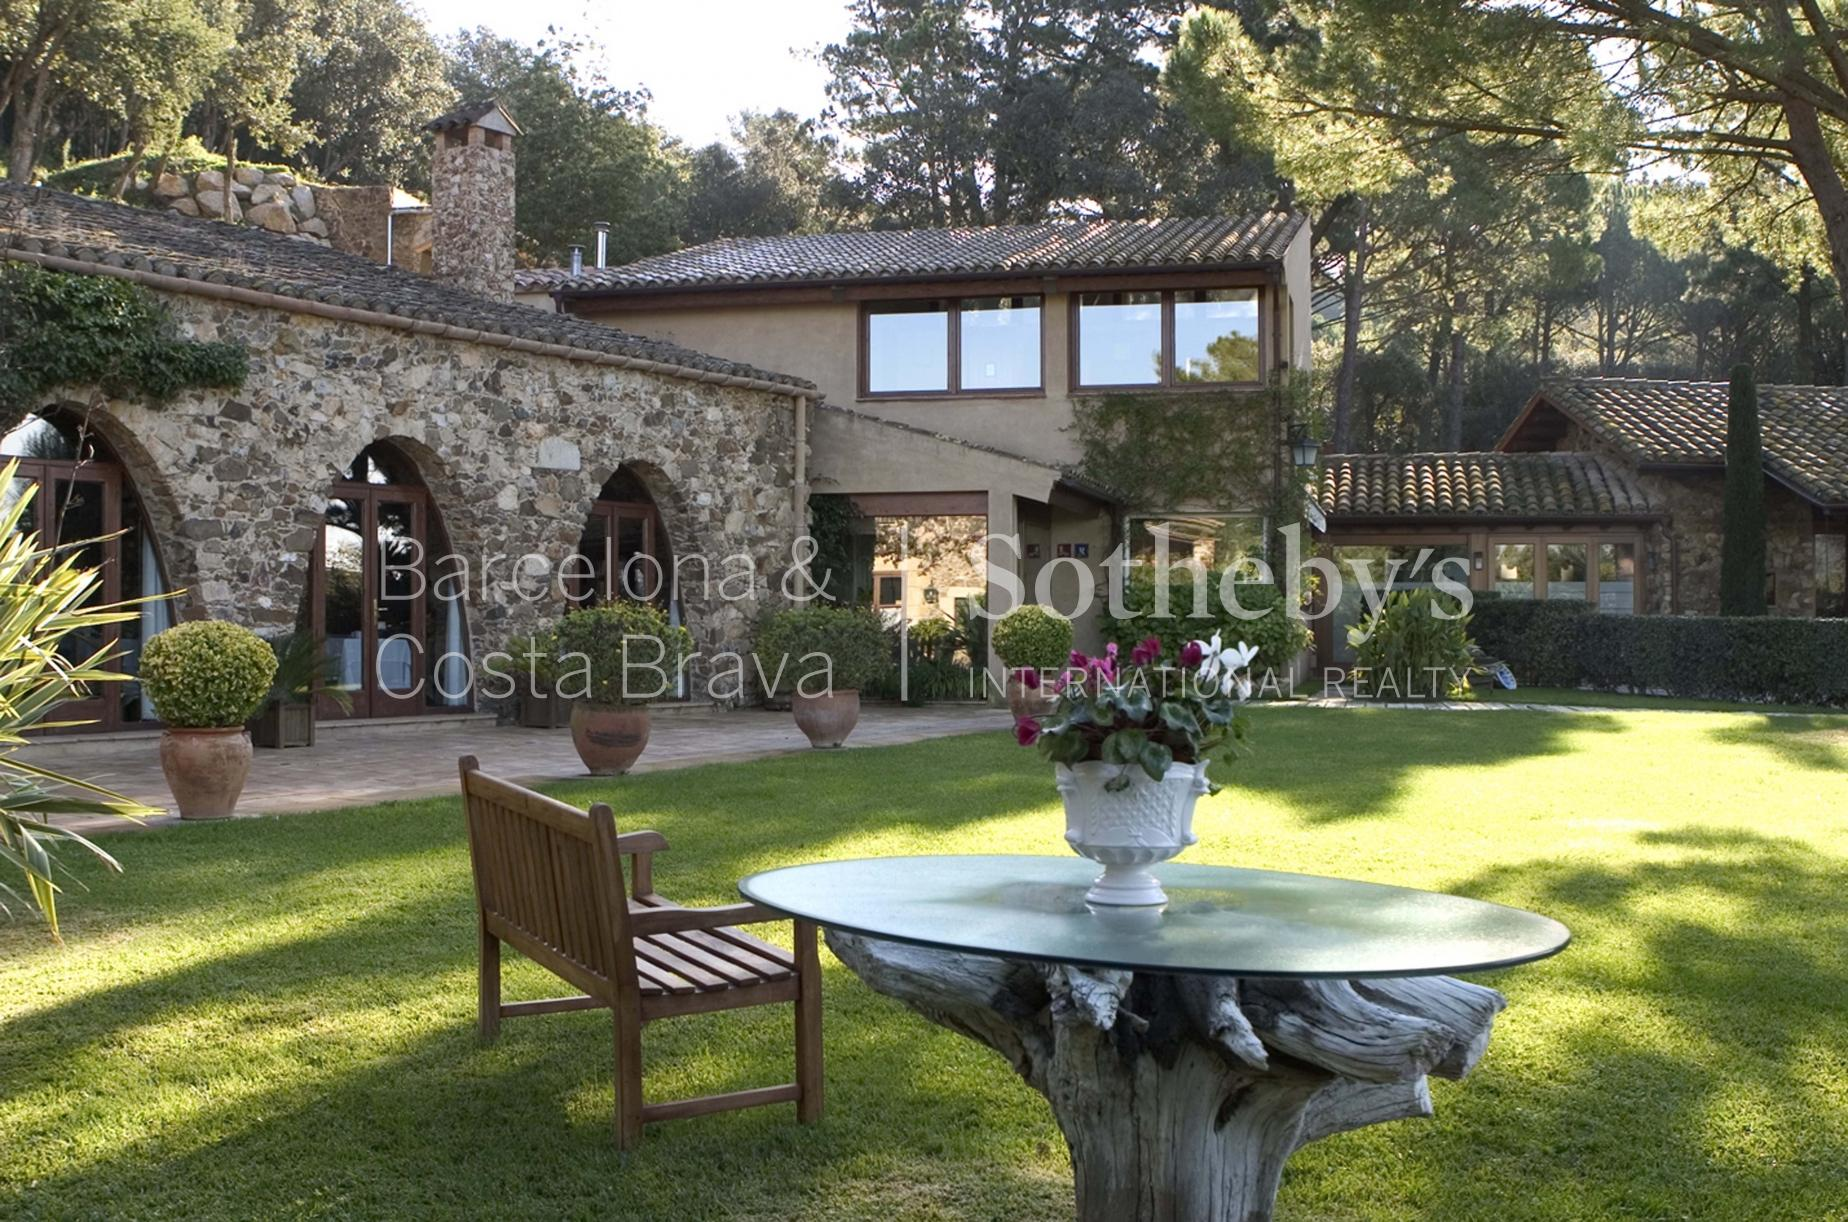 Single Family Home for Sale at Country house located close to Calella de Palafrugell Other Cities Baix Emporda, Barcelona 17001 Spain